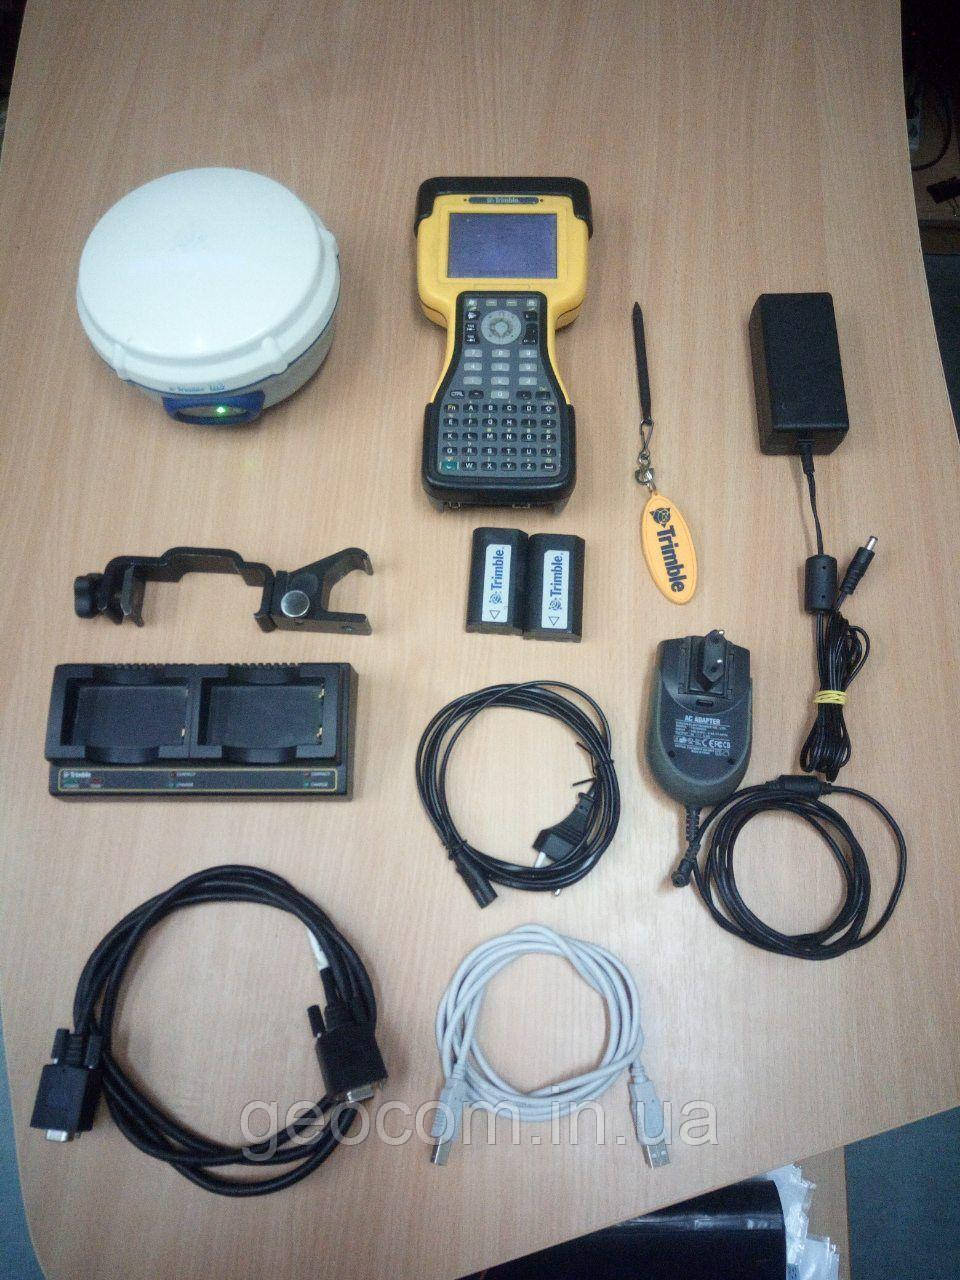 Trimble R6 4 поколения + TSC 2 + Survey controller + веха